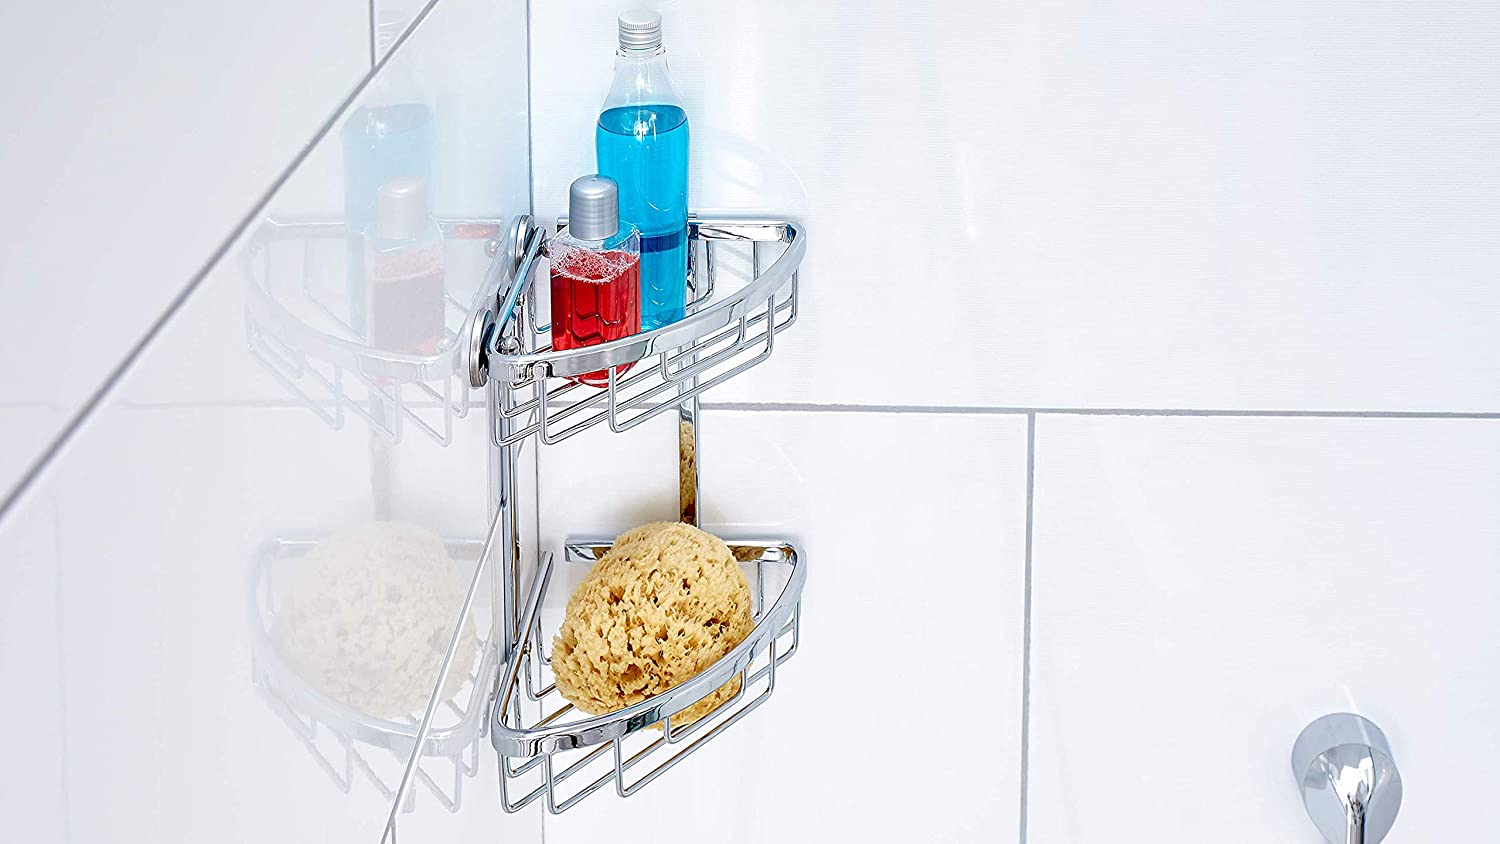 Wall Mounted Wide Bathroom Shower Storage Caddy tesa Aluxx No Drill Removable Glue Adhesive. Chrome-plated Aluminium Shower Basket